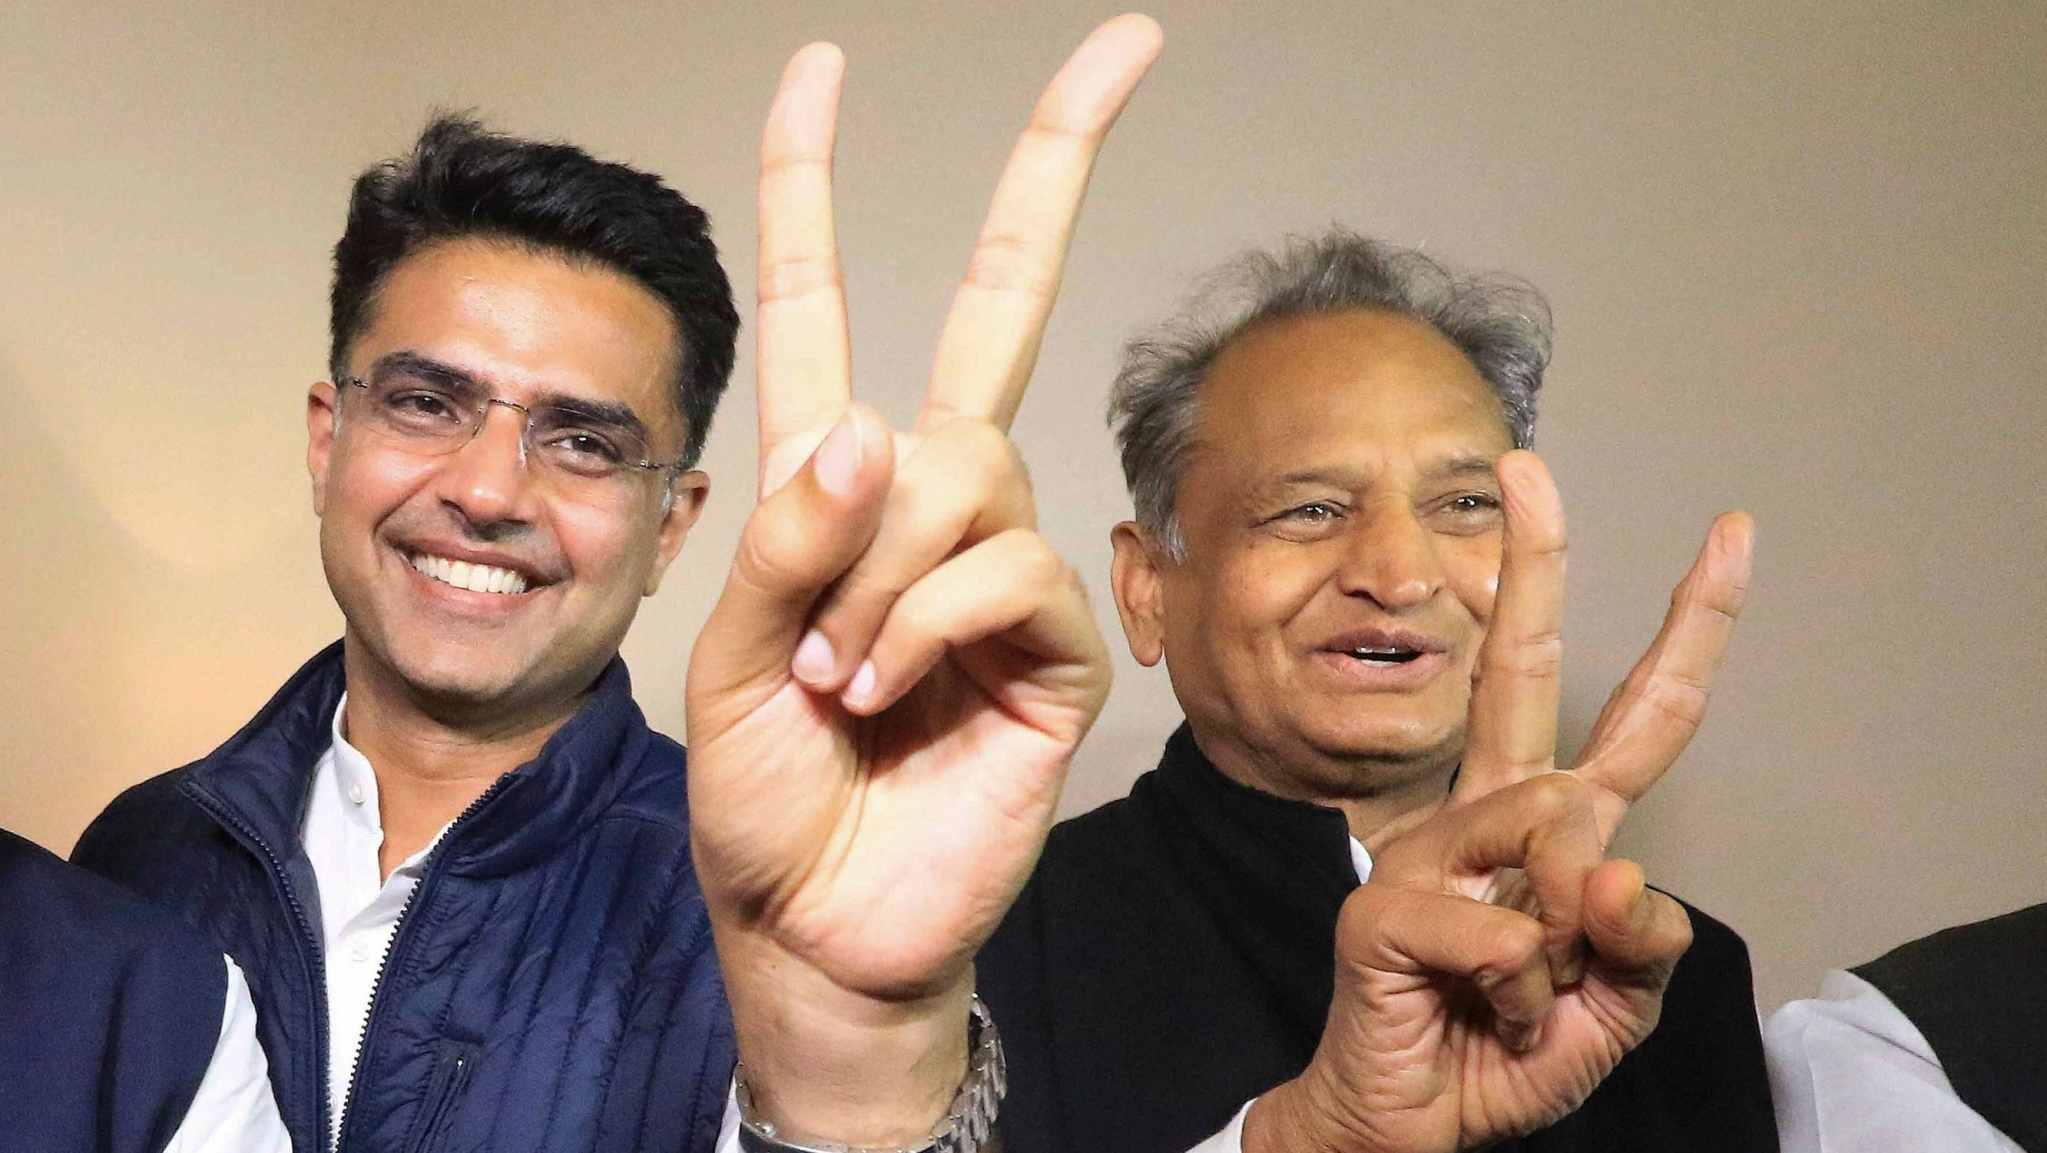 Rajasthan Civic Poll Results a Shot in the Arm for Ashok Gehlot